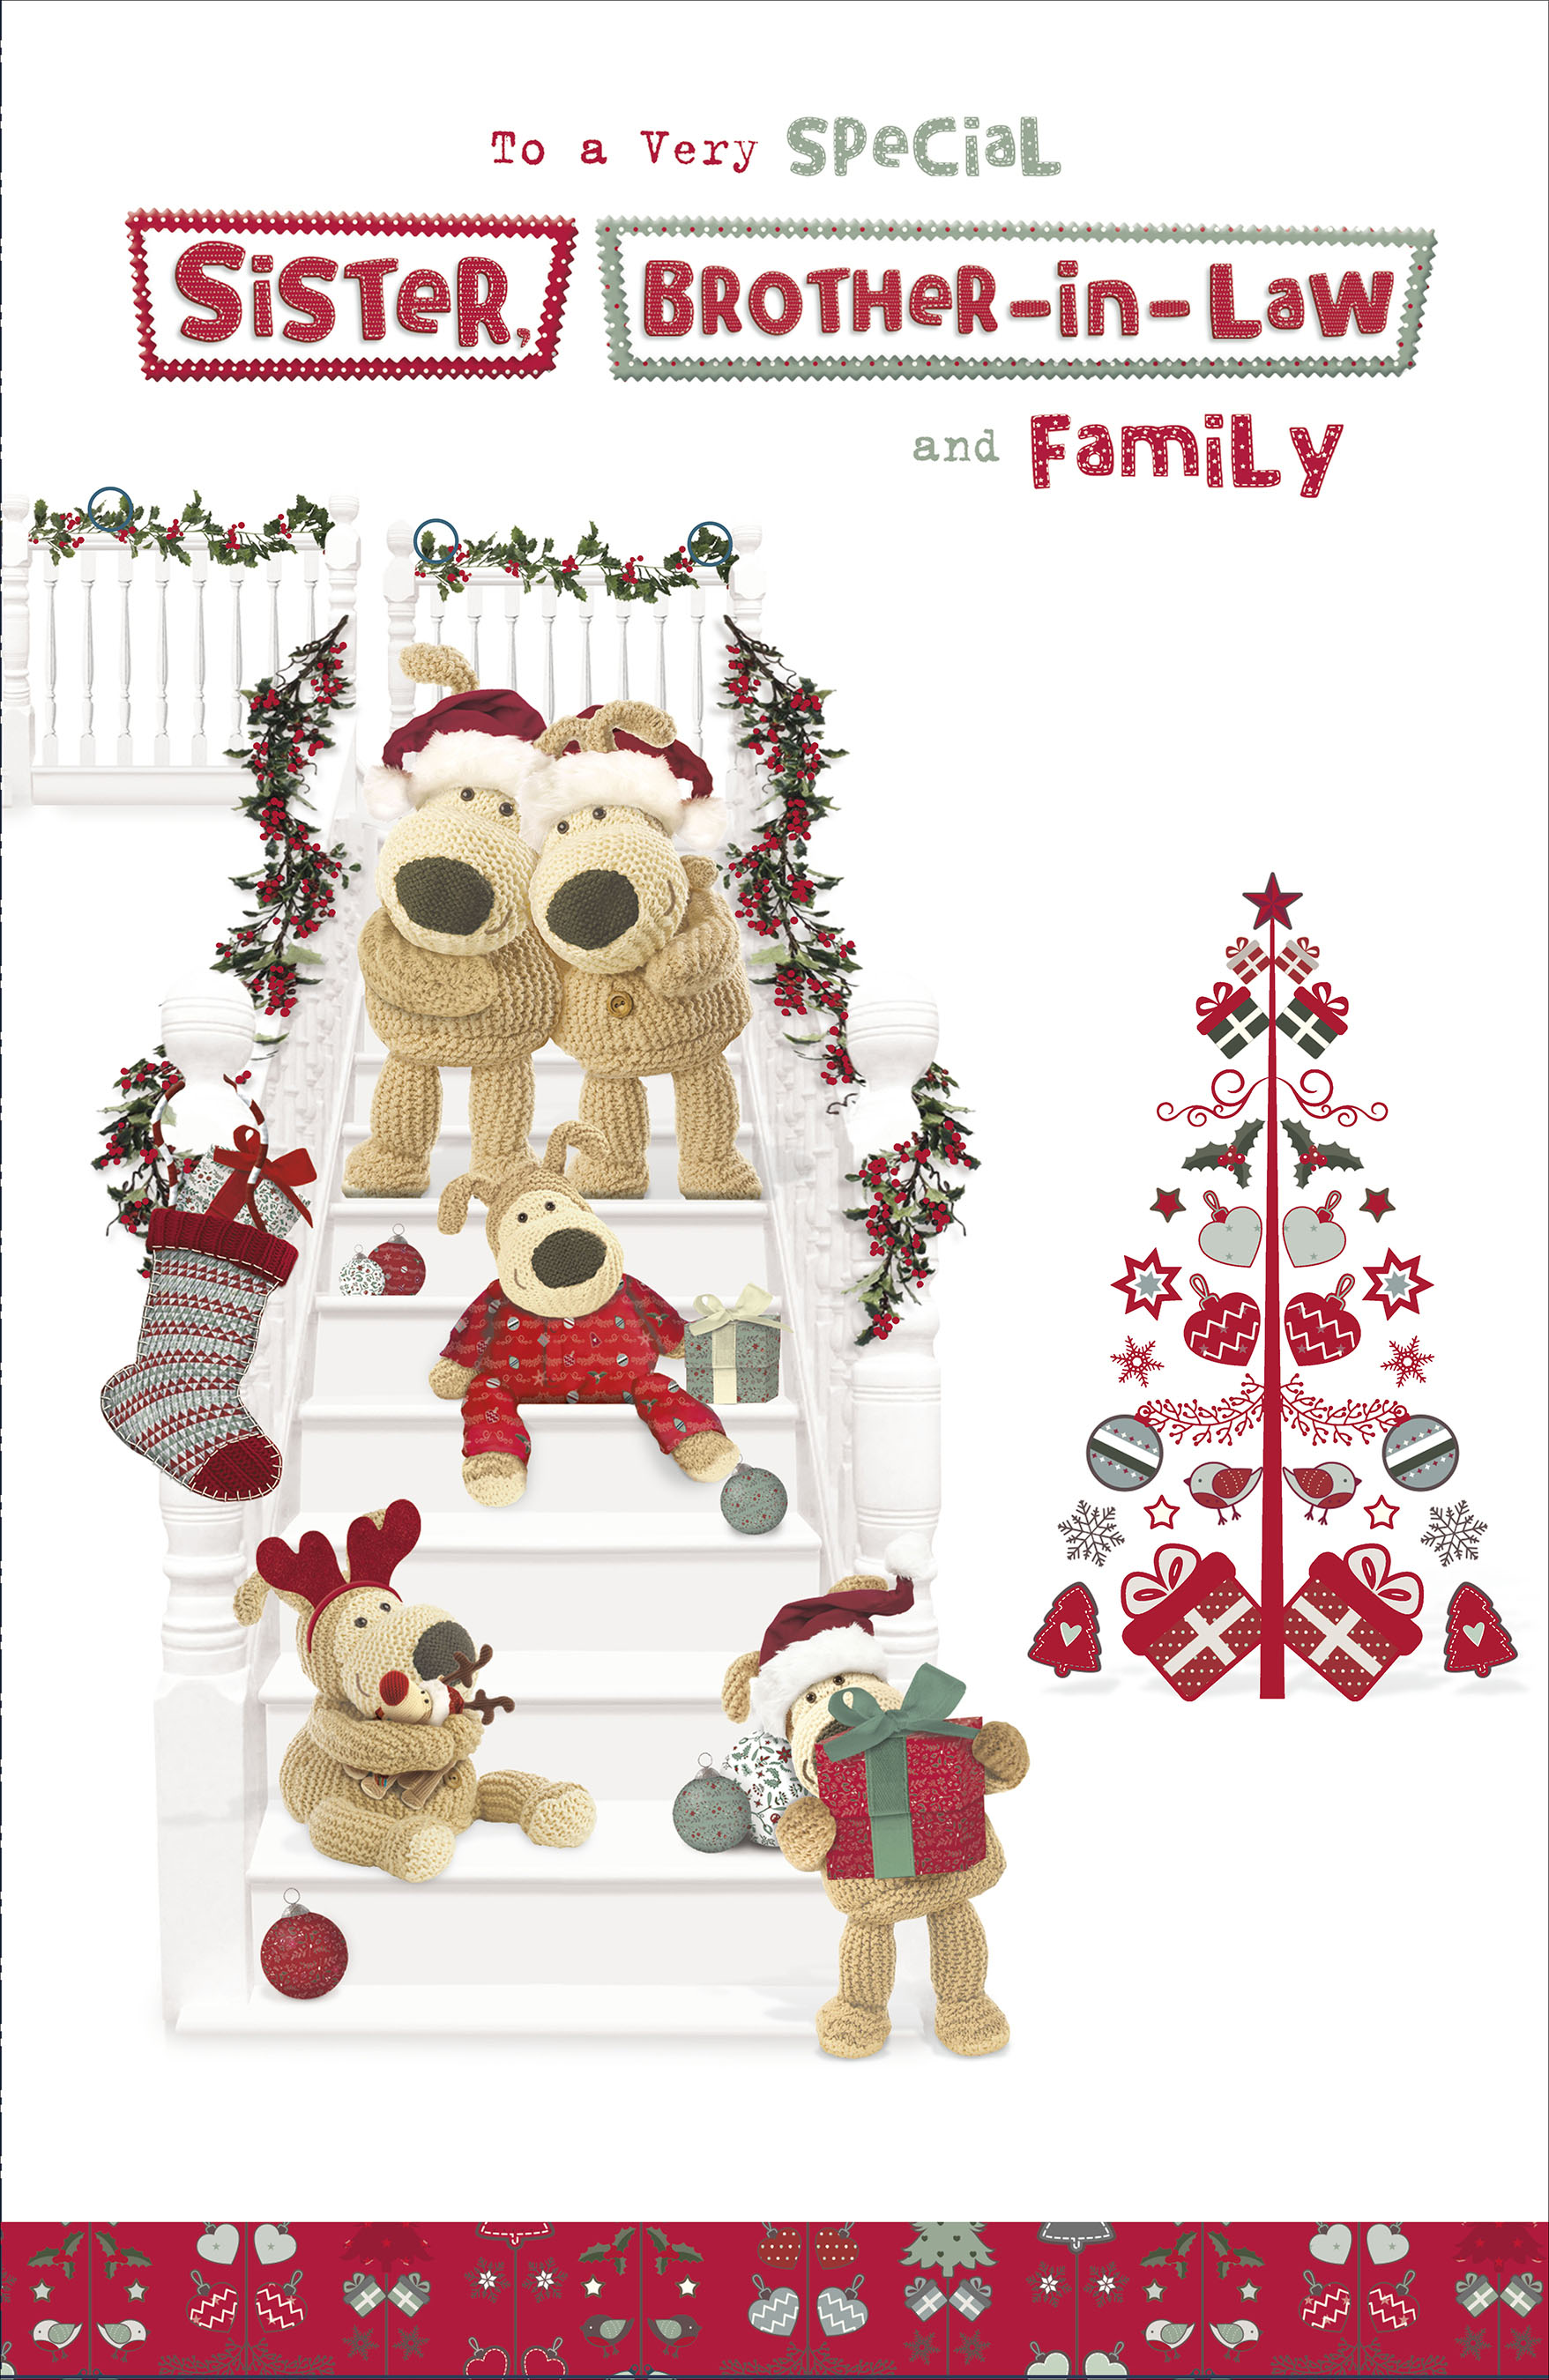 Christmas Wishes Card.Boofle Sister Brother In Law Family Christmas Greeting Card